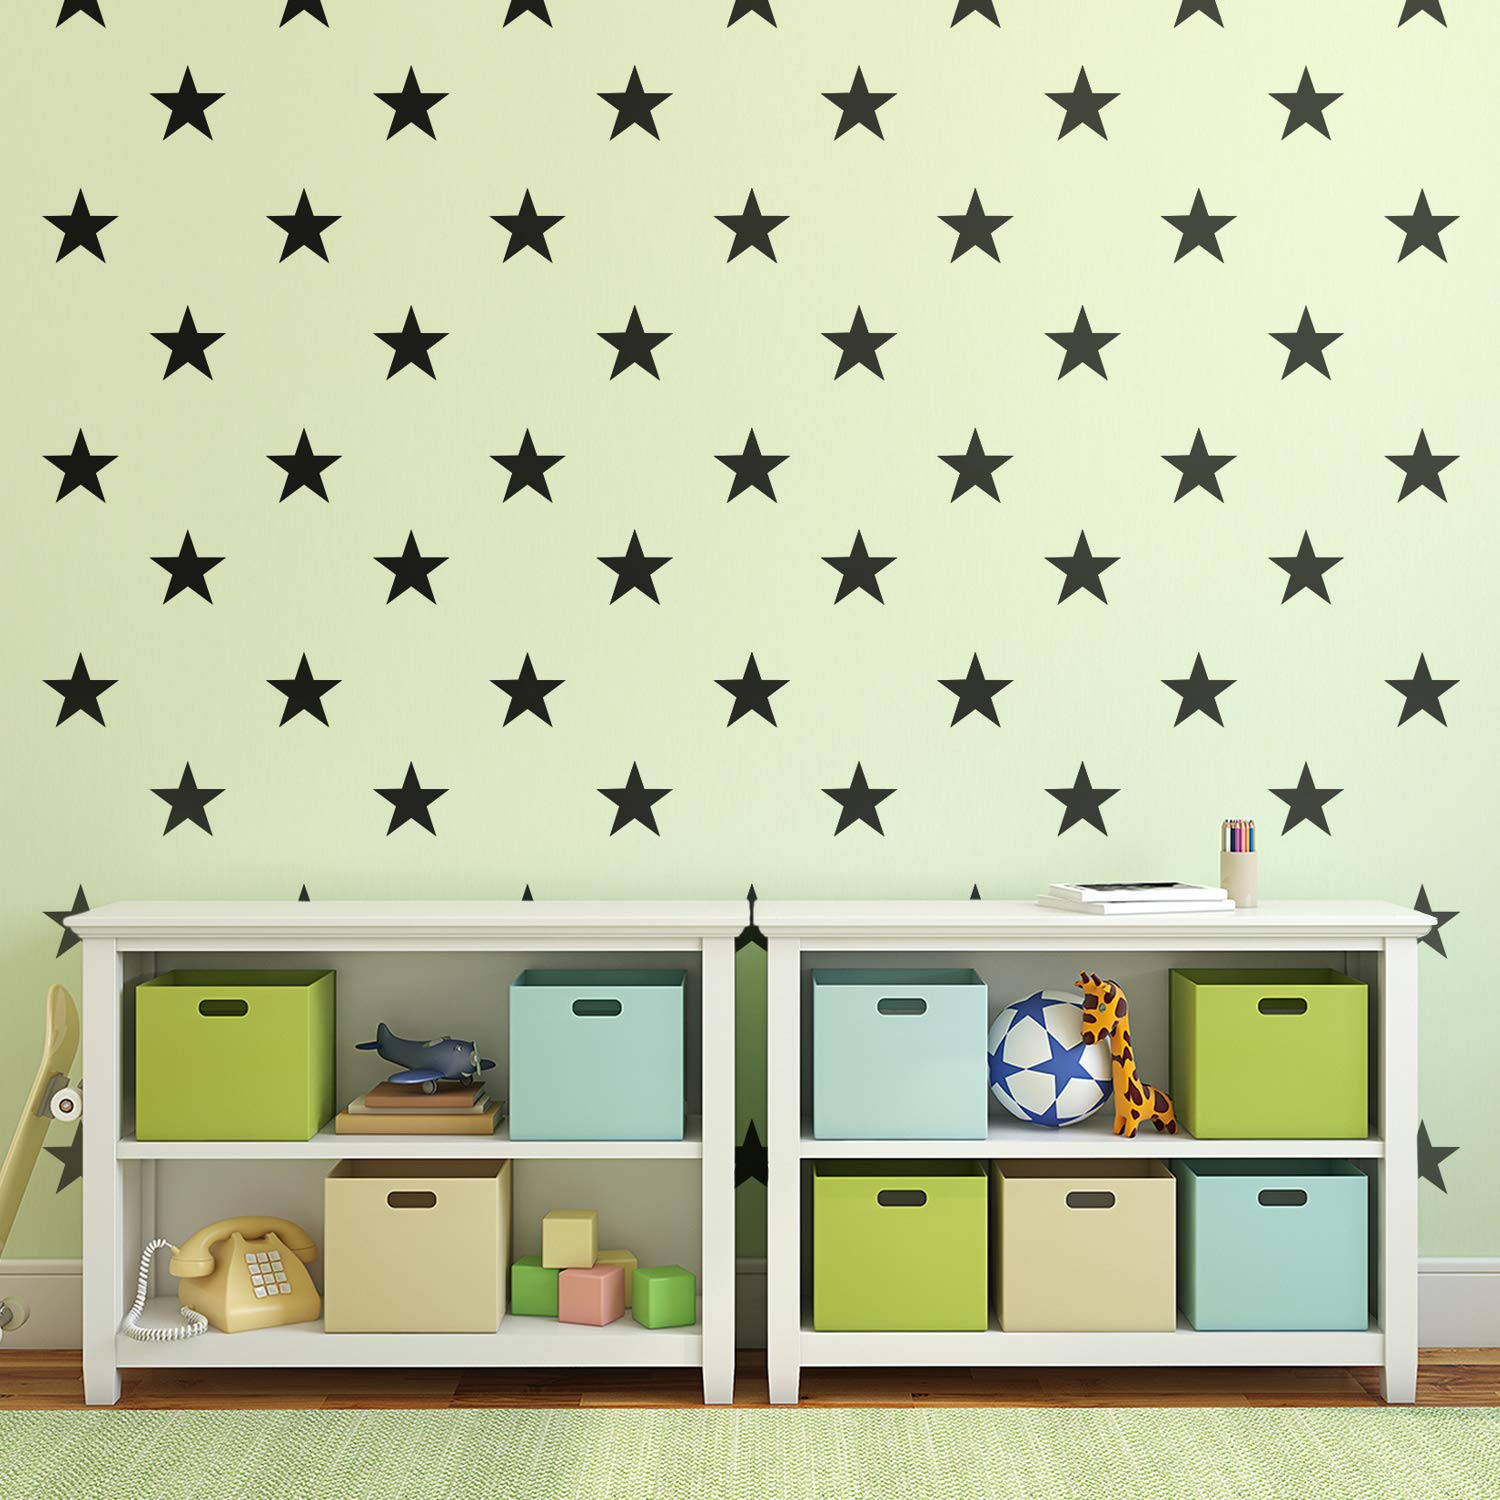 """Set of 20 Vinyl Wall Art Decals - Stars - 5"""" x 5"""" Each - Cute Adhesive Sticker Shapes for Kids Toddlers Teens Bedroom Playroom Nursery Living Room Home Apartment Decorations (Black)"""